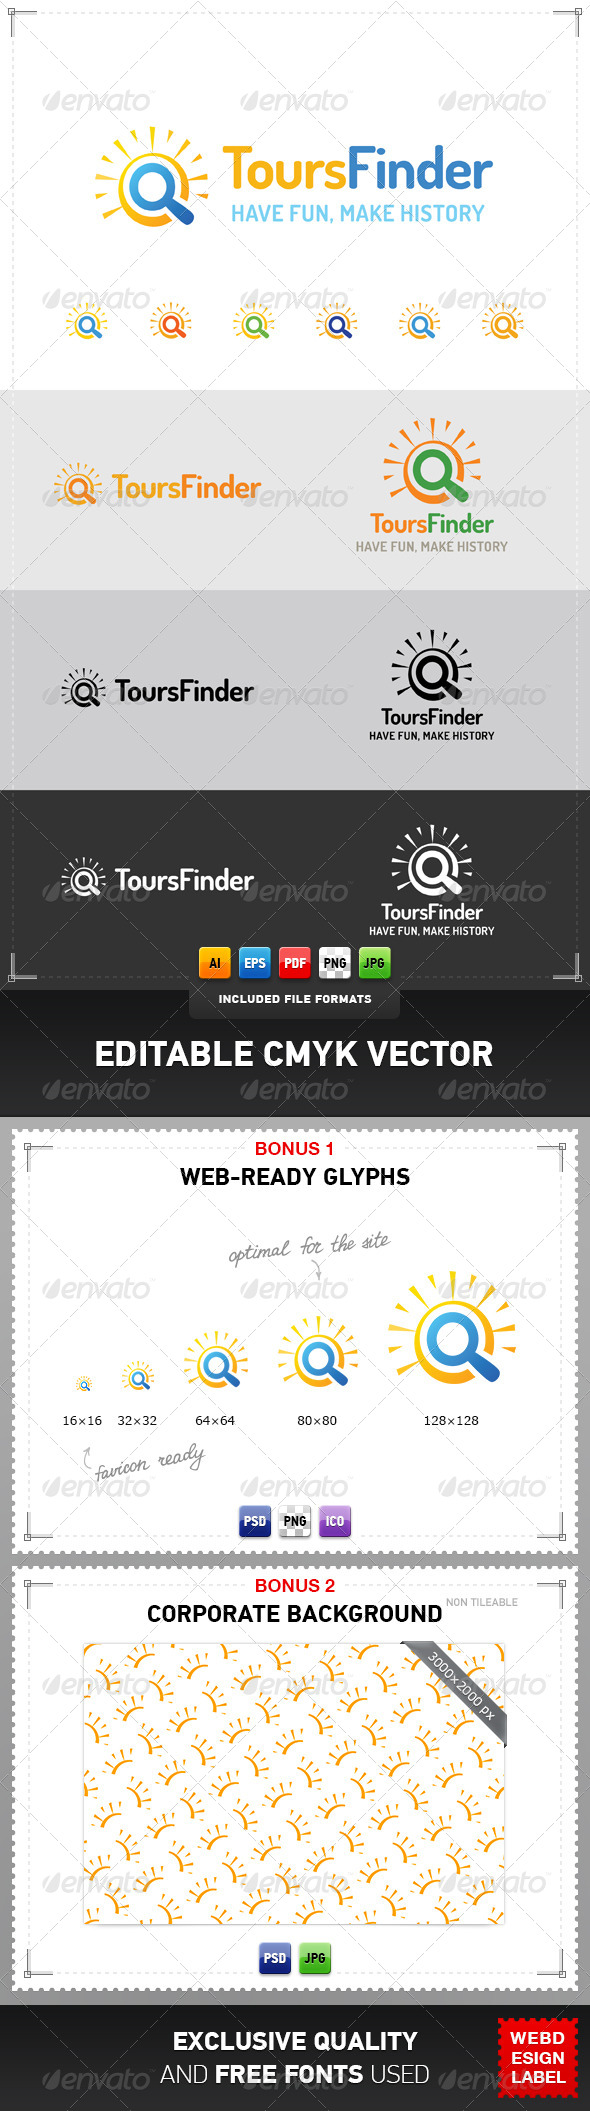 Tours Finder Logo - Symbols Logo Templates